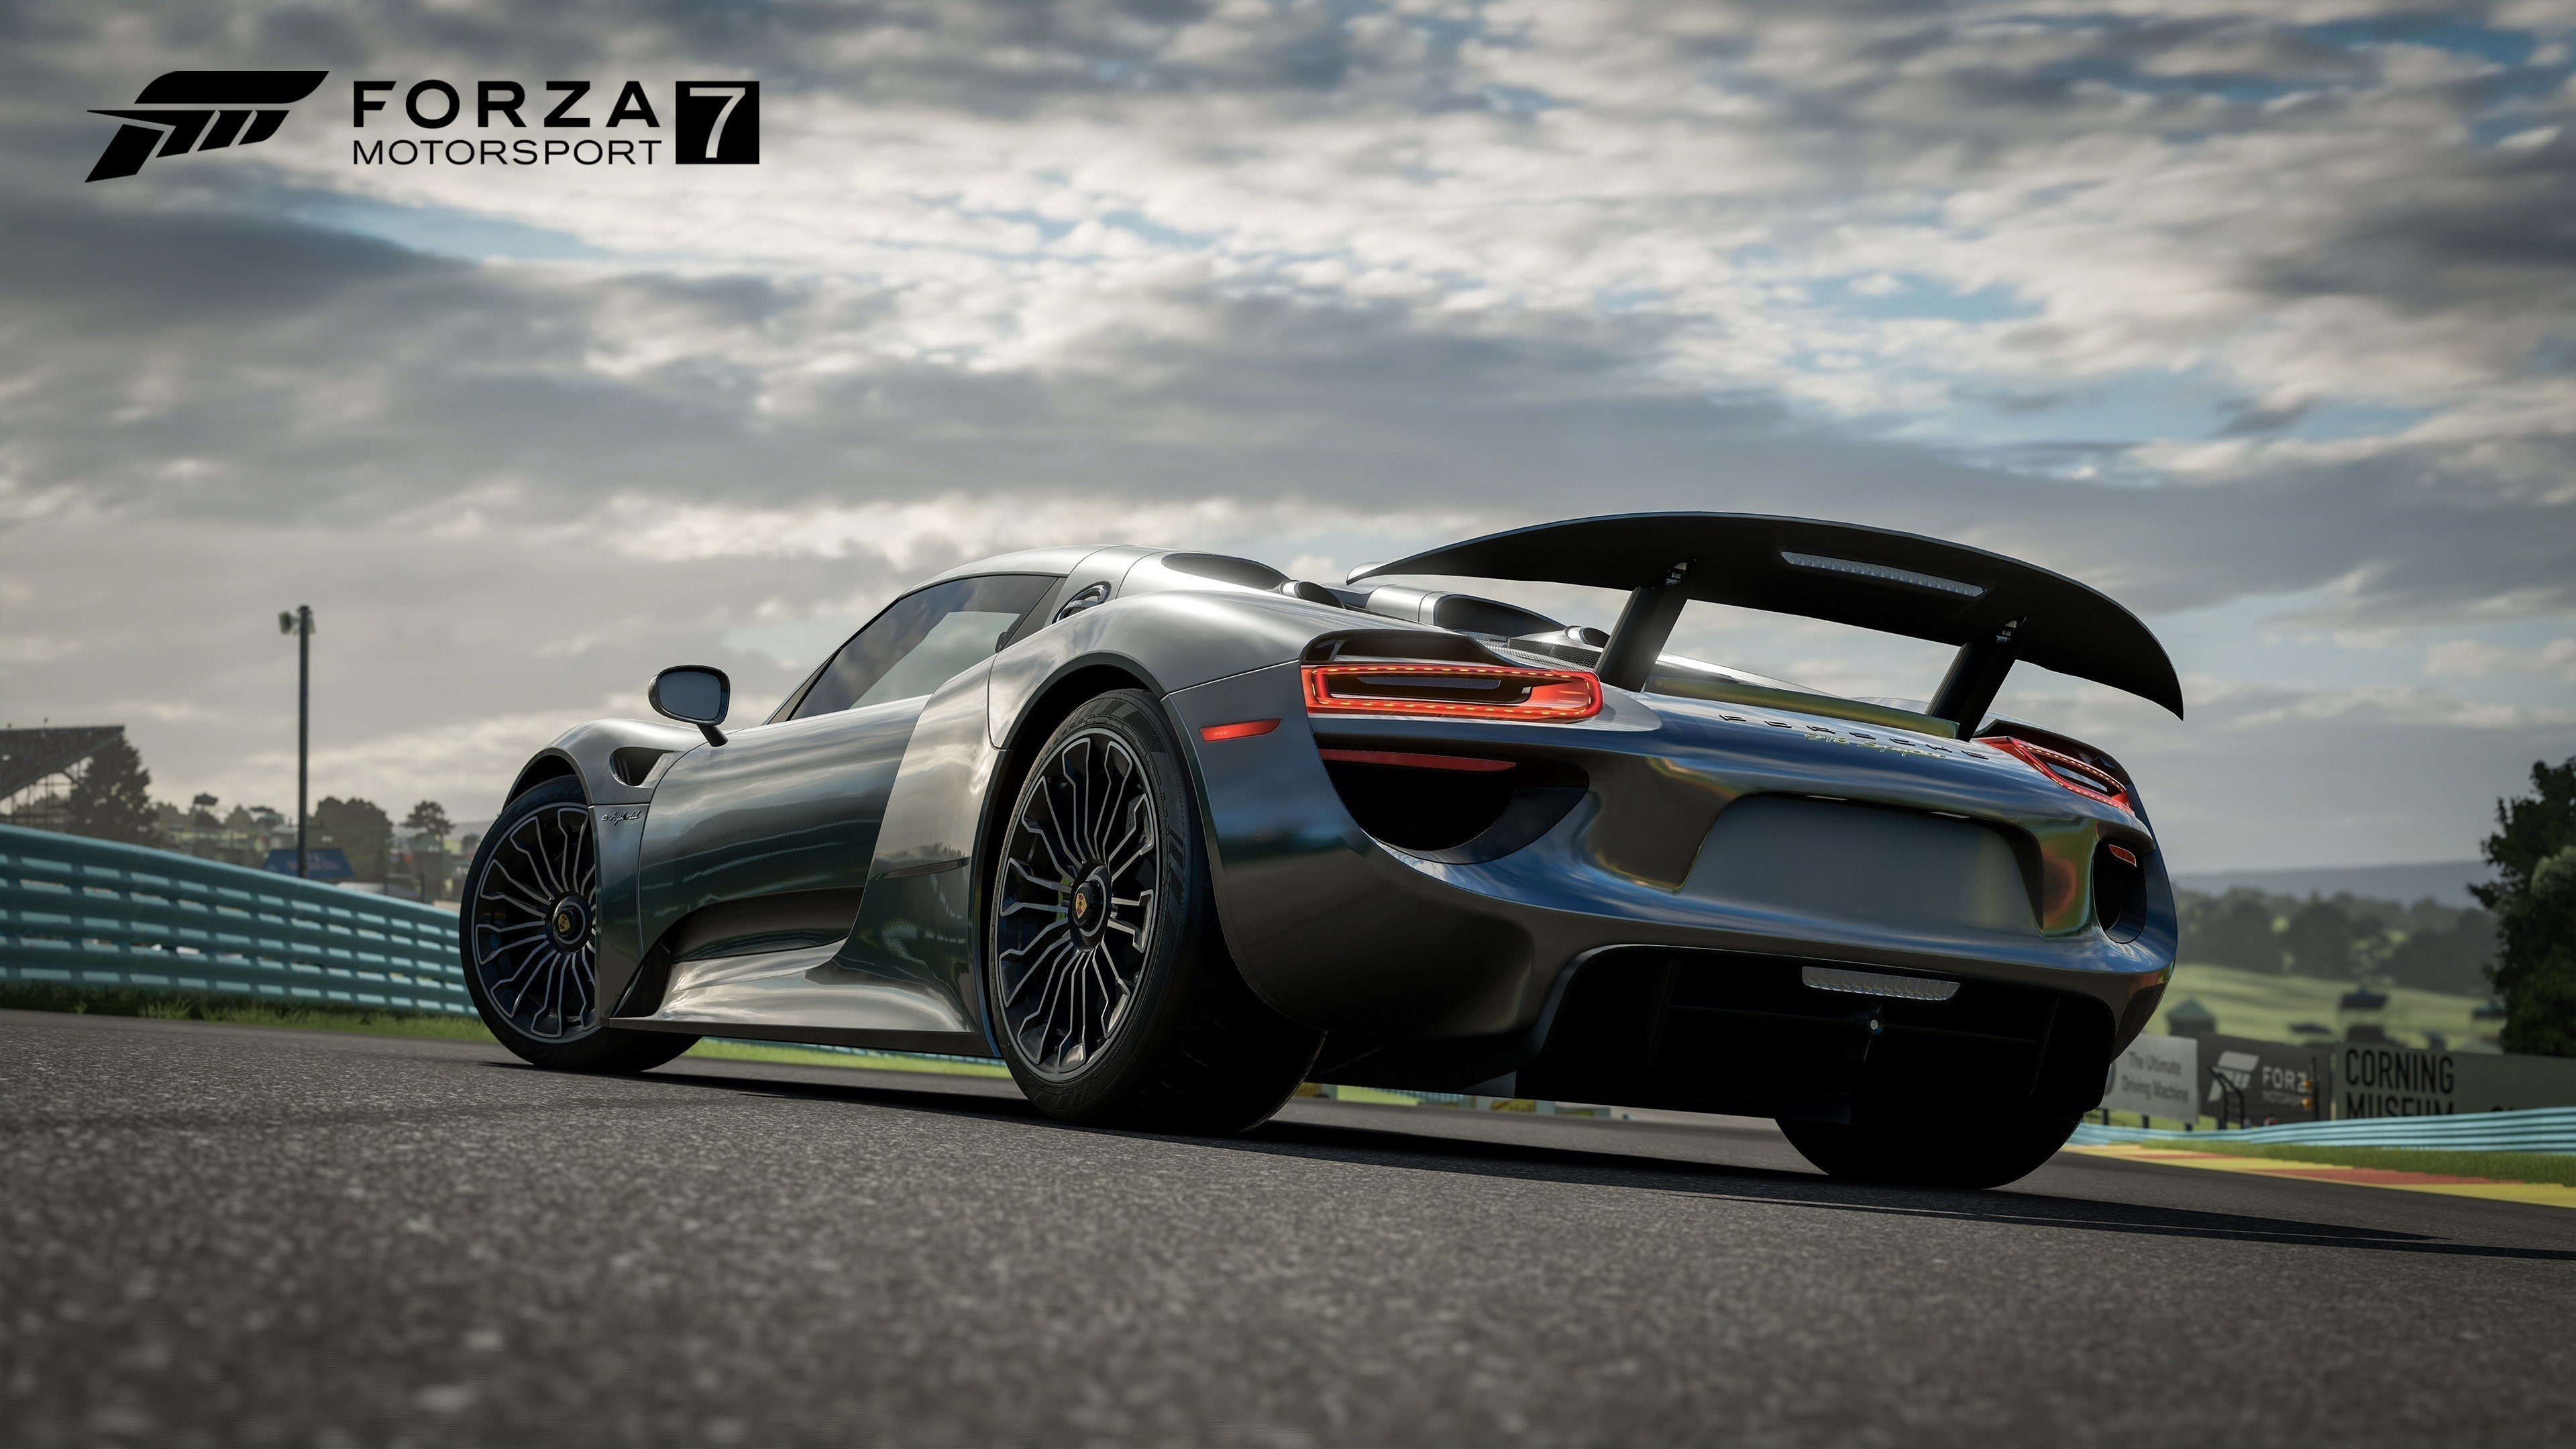 Forza Motorsport 7 HD Wallpapers and Background Images   stmednet 3840x2160